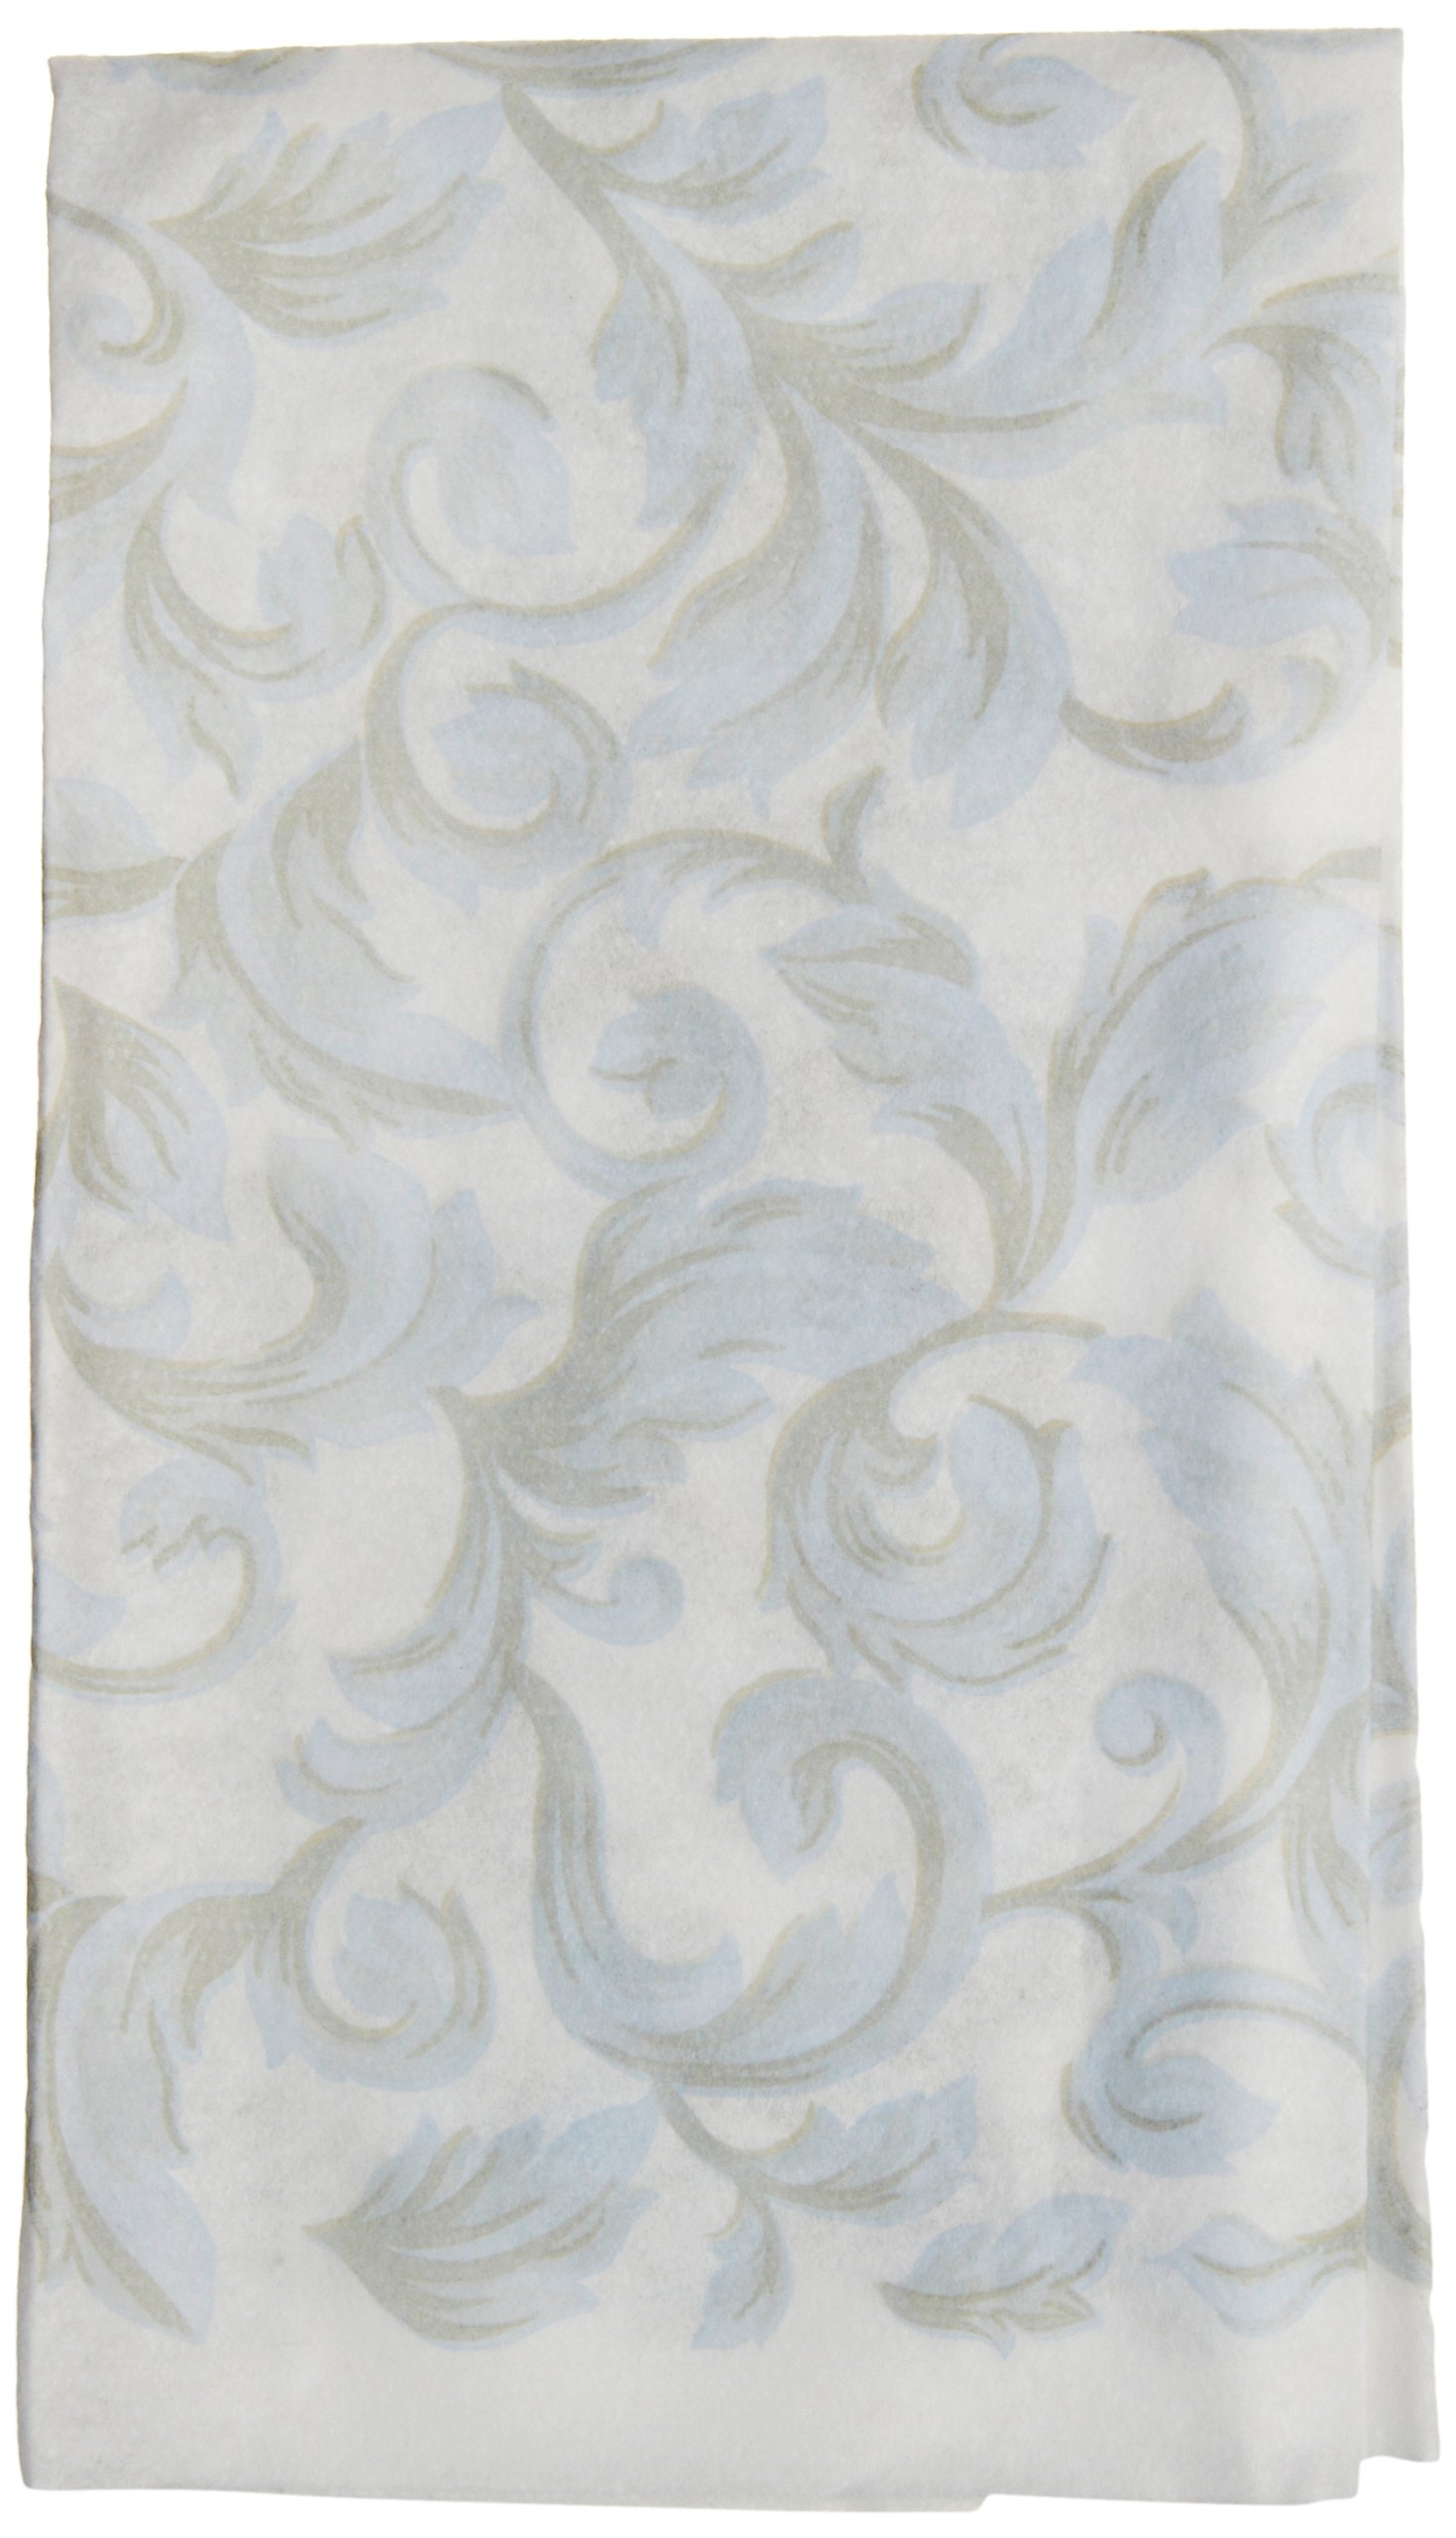 Hoffmaster 856524 Linen-Like Guest Towel, 1/6 Fold, 17'' Length x 12'' Width, Imperial (Case of 500)